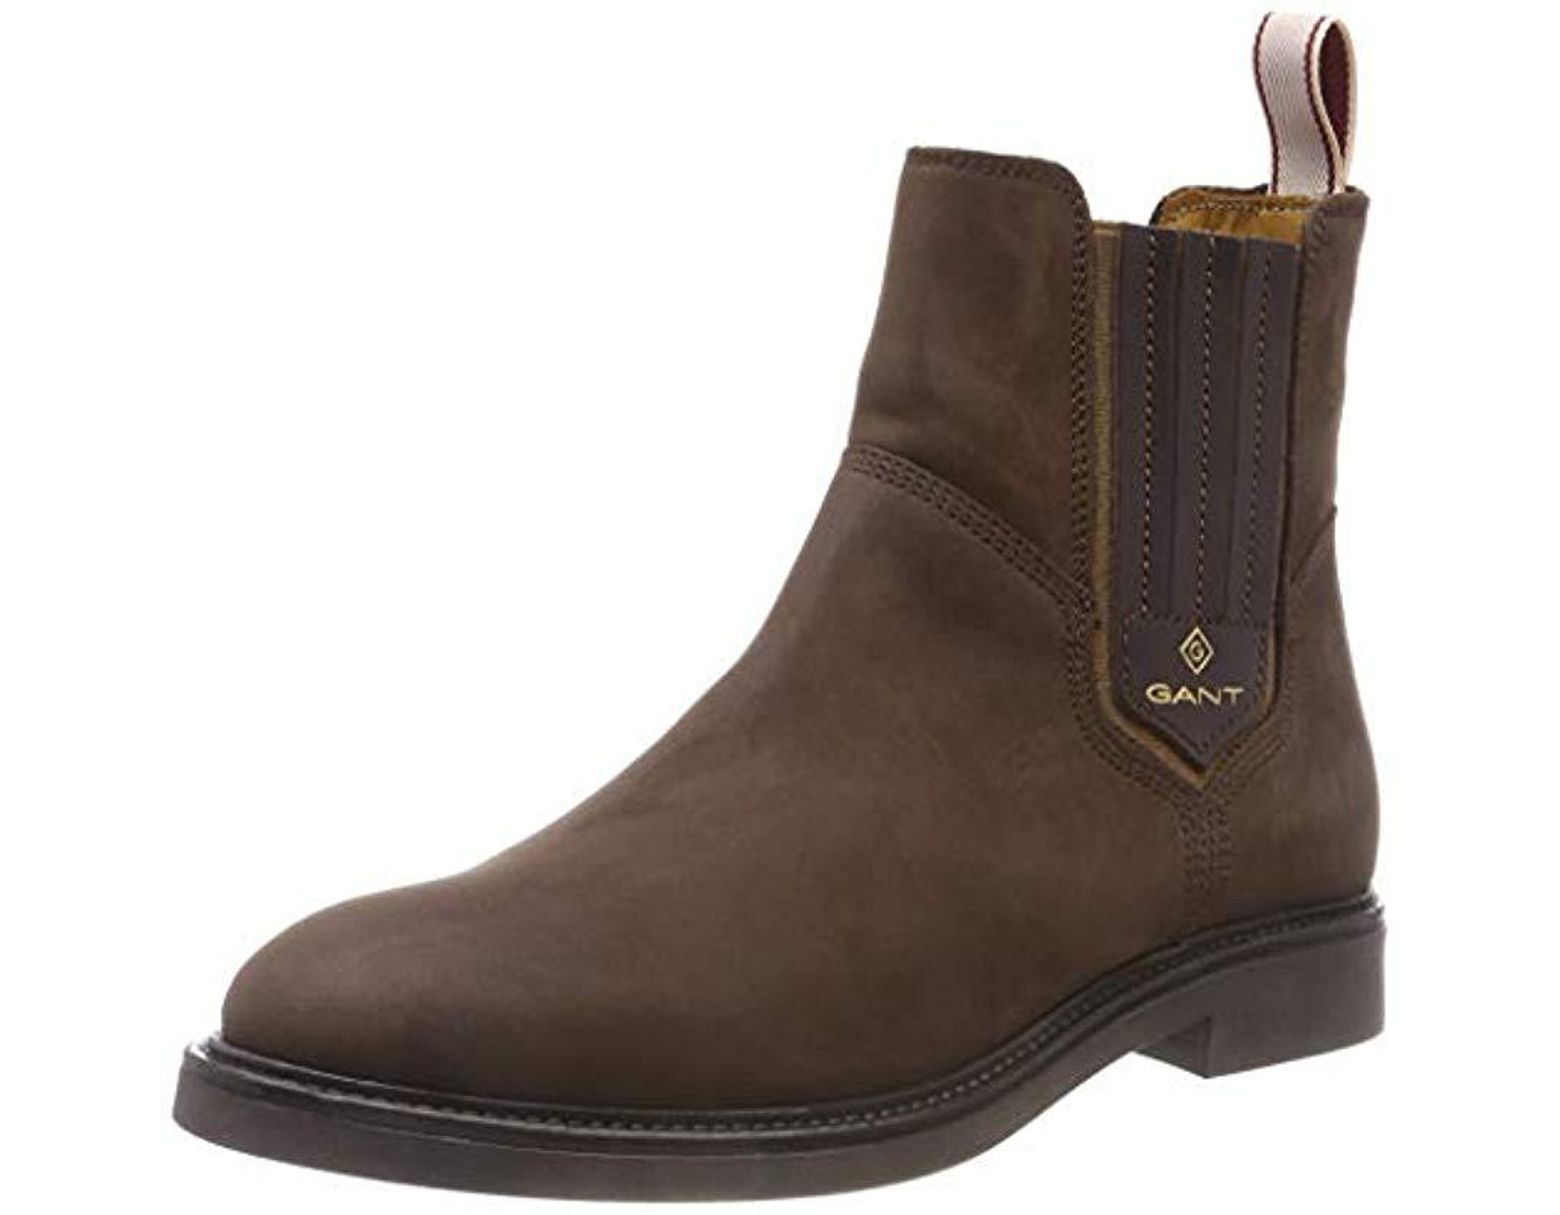 45c44b414acfb GANT Ashley Chelsea Boots in Brown - Lyst